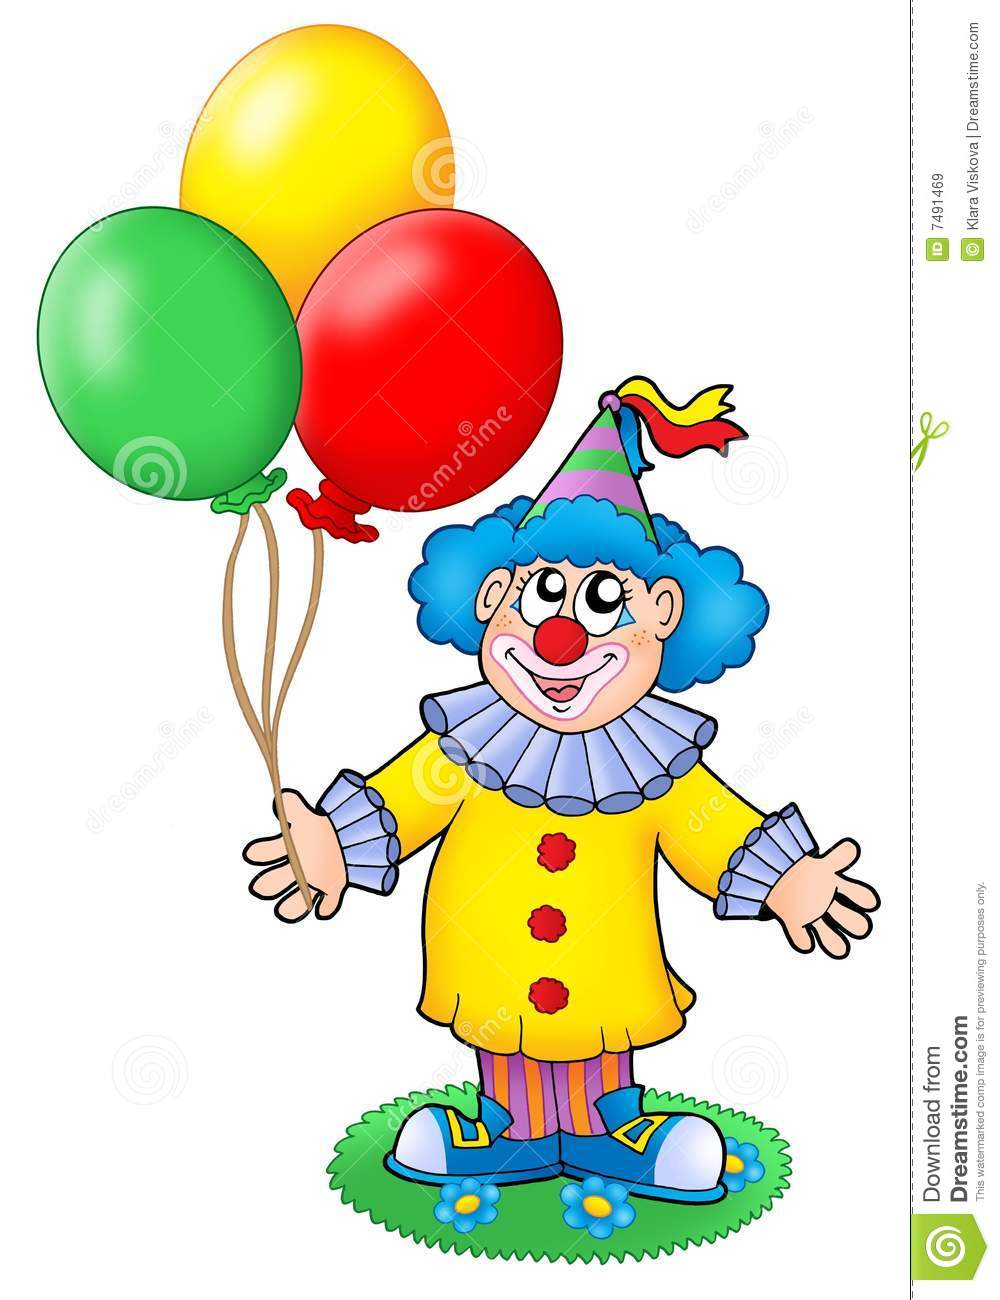 Cute clown with balloons stock illustration. Illustration of ...